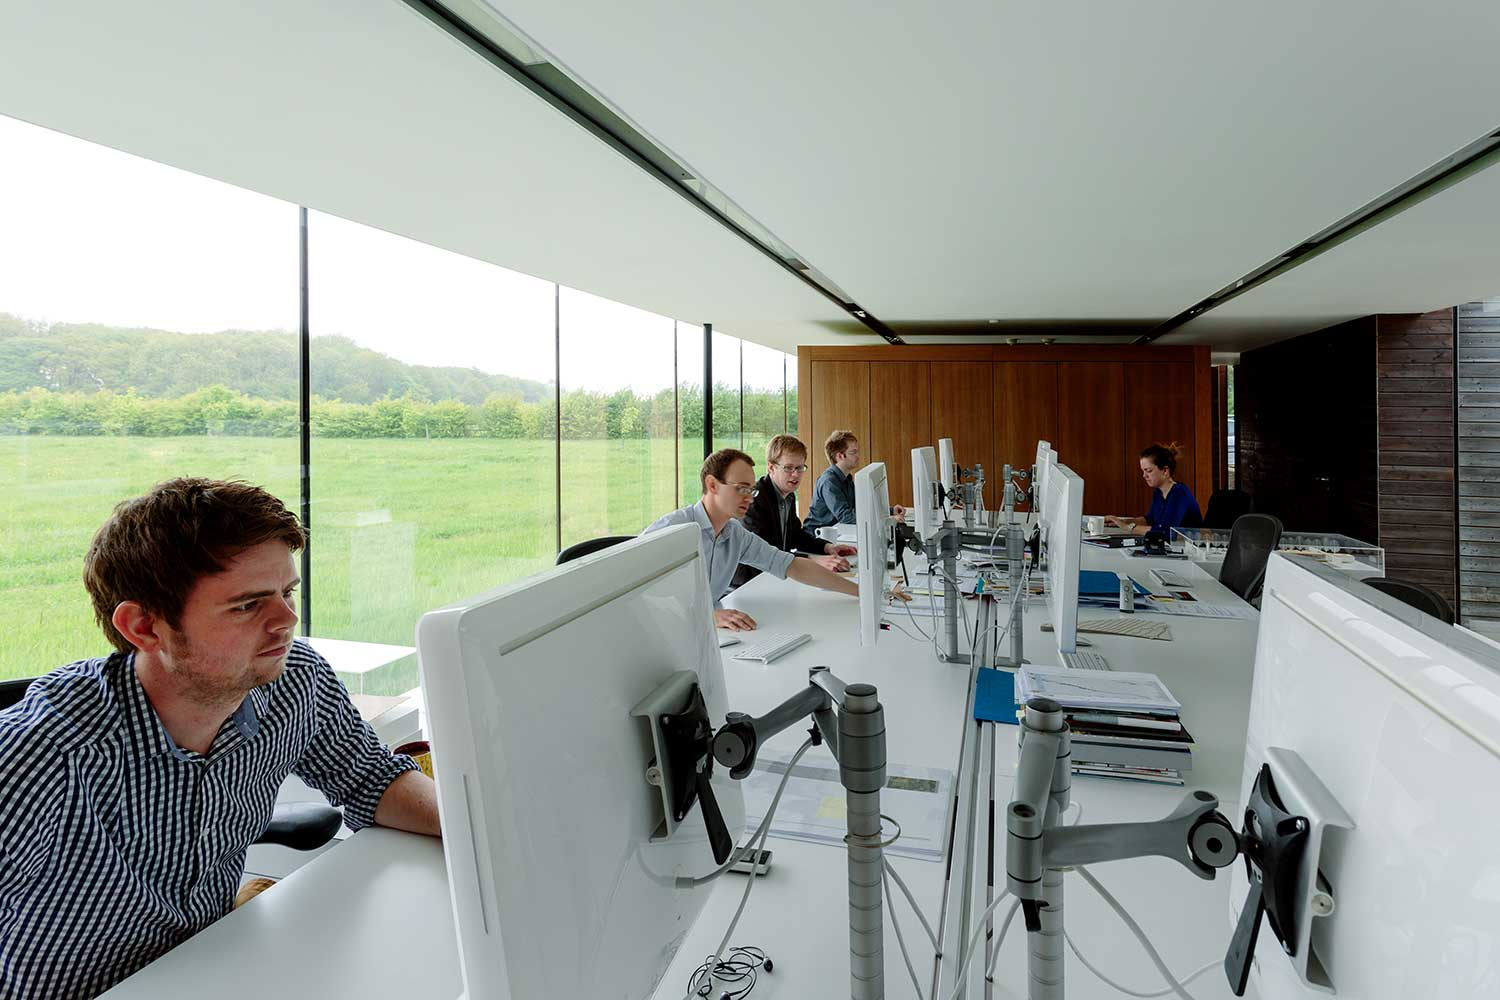 Modern office with 5 employees working - Blog Image 2018.jpg